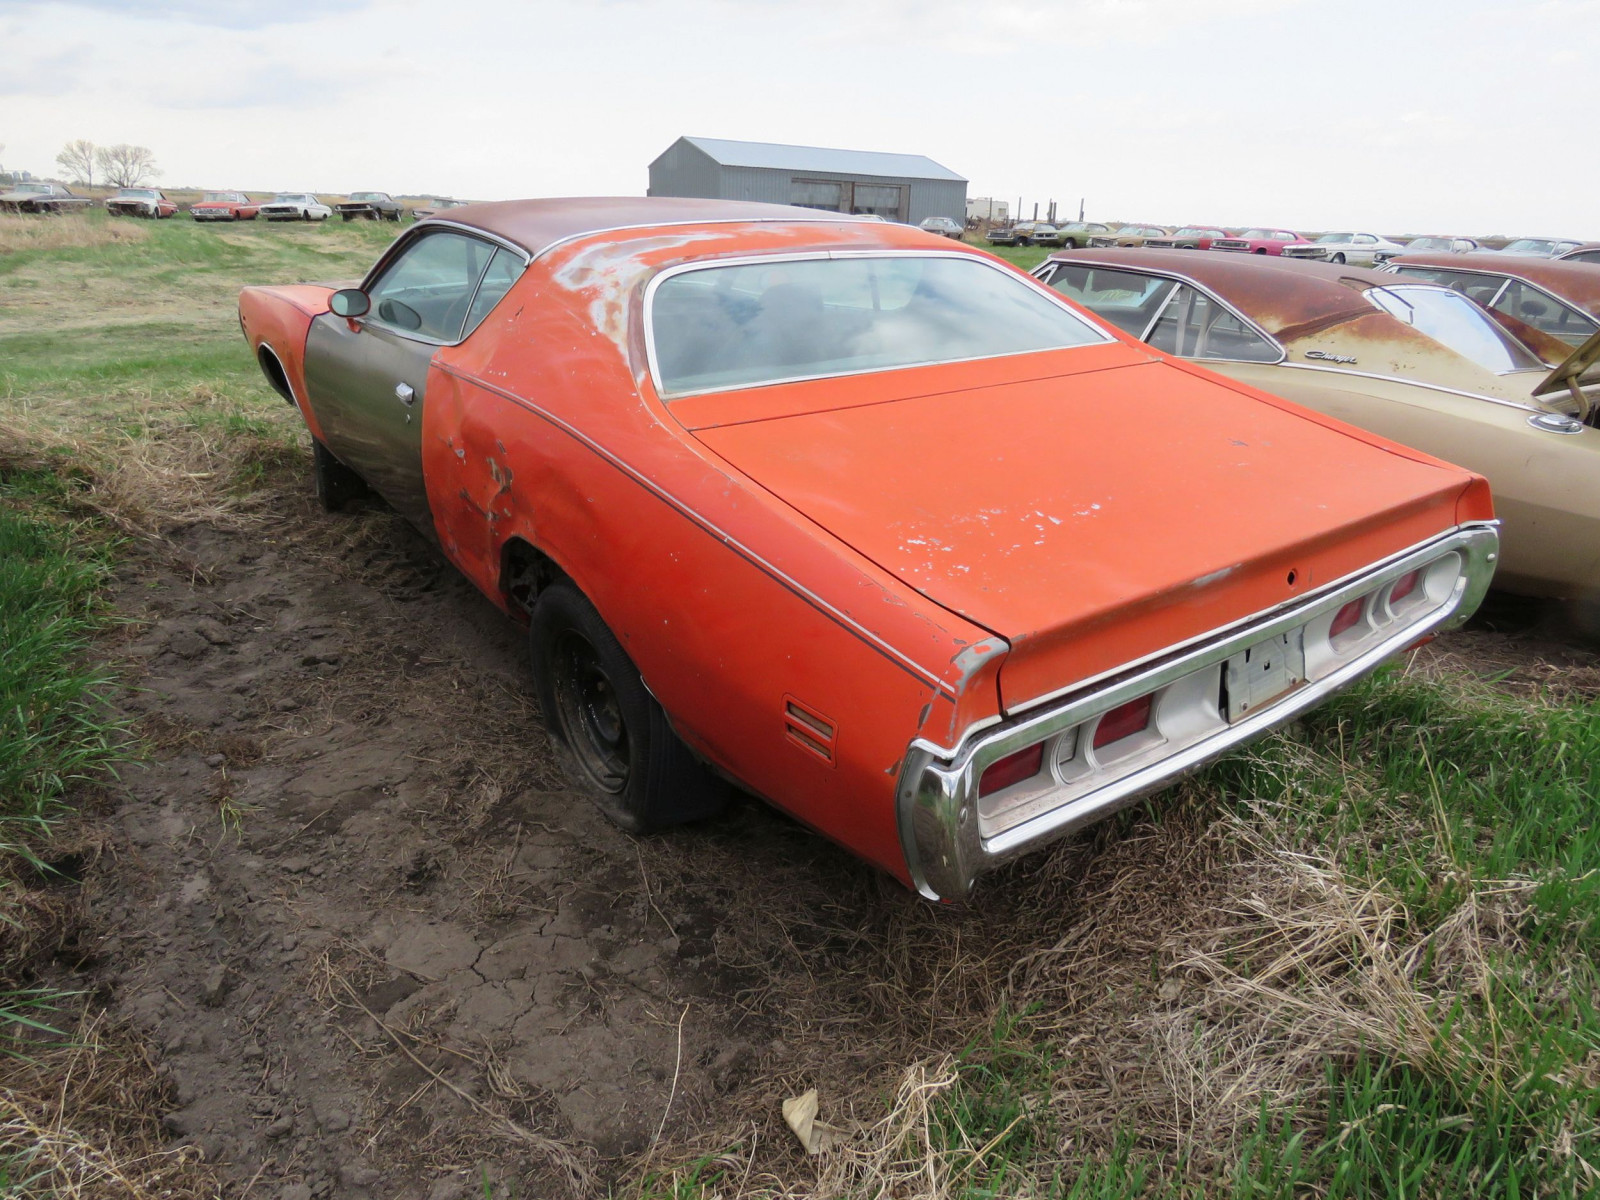 1971 Dodge Charger Coupe - Image 7